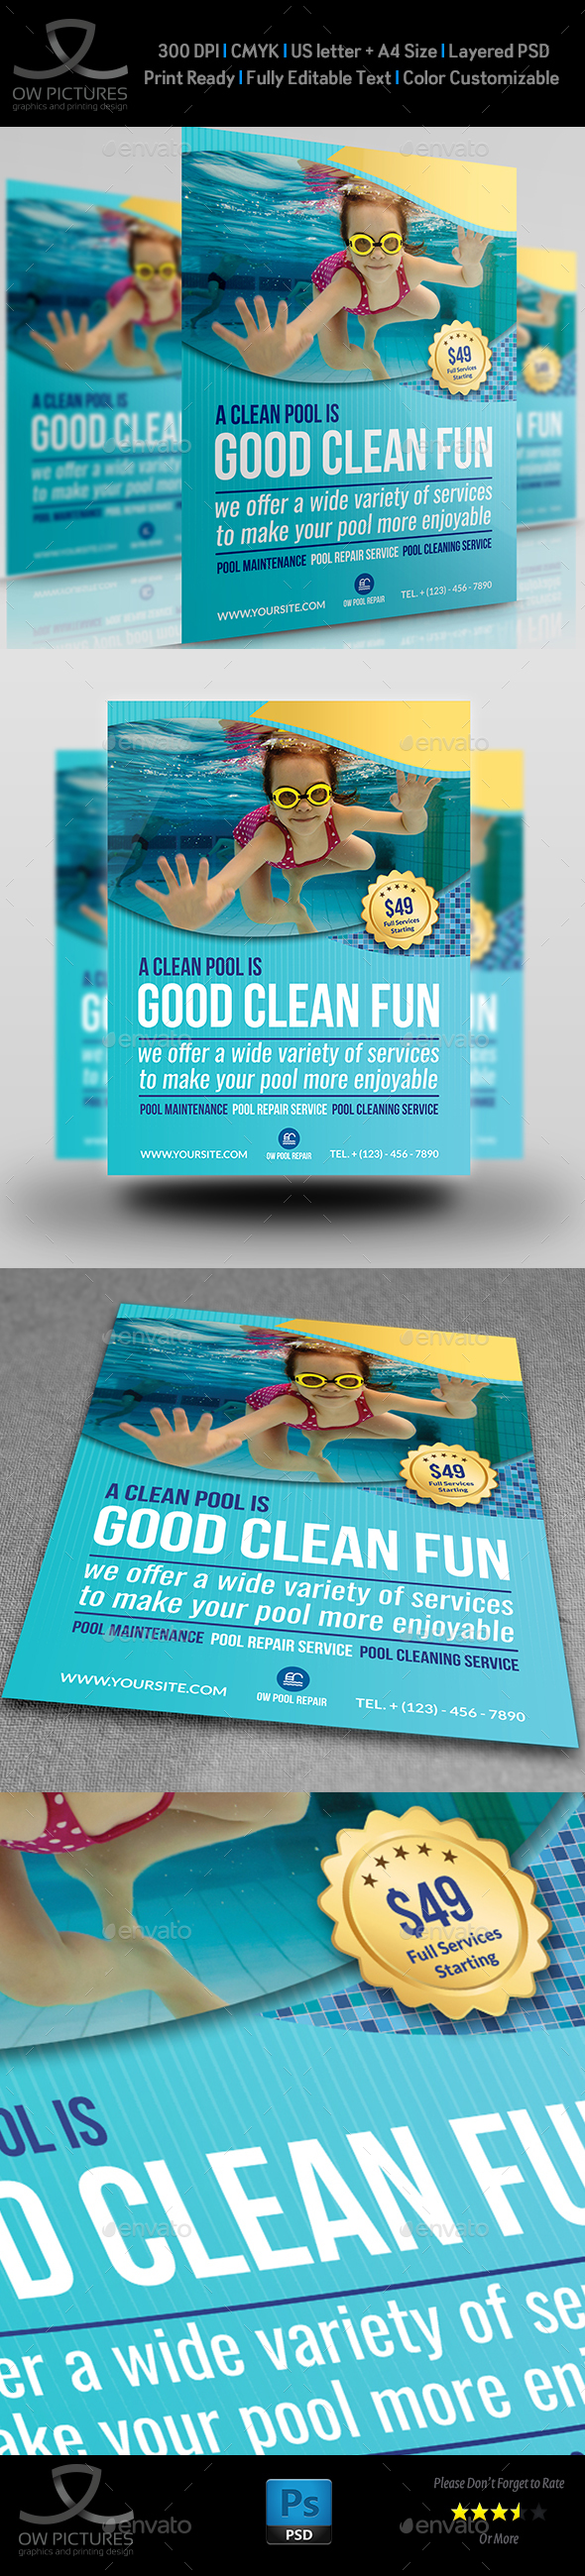 Swimming Pool Cleaning Service Flyer Template - Flyers Print Templates